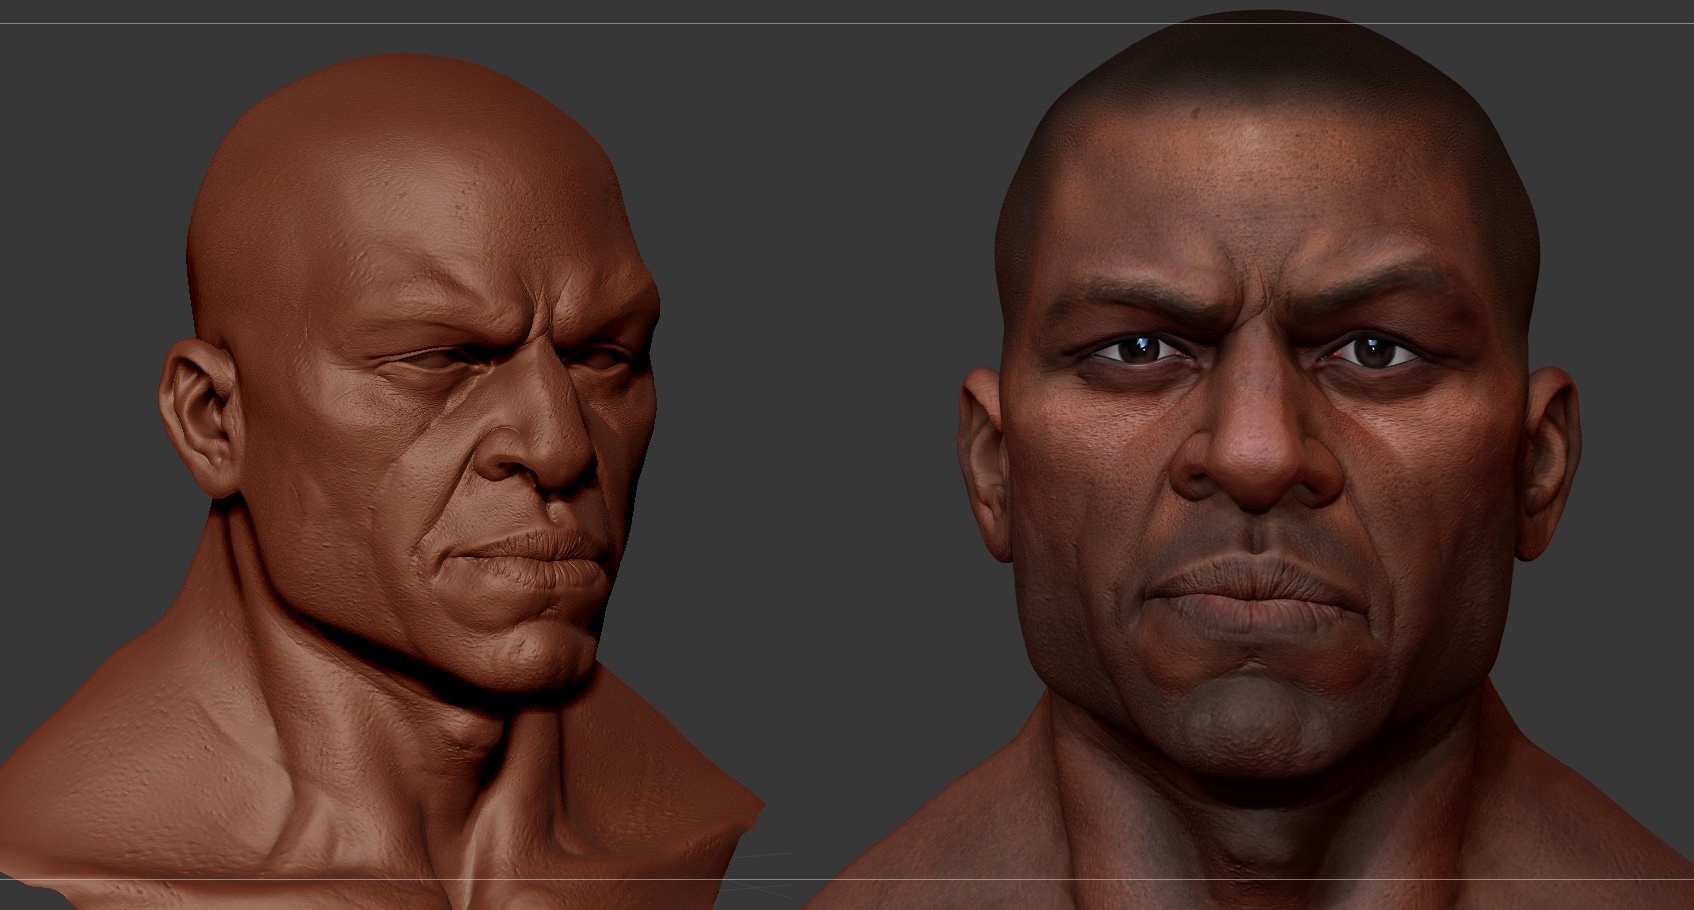 Black Guy Zbrush by mojette on DeviantArt